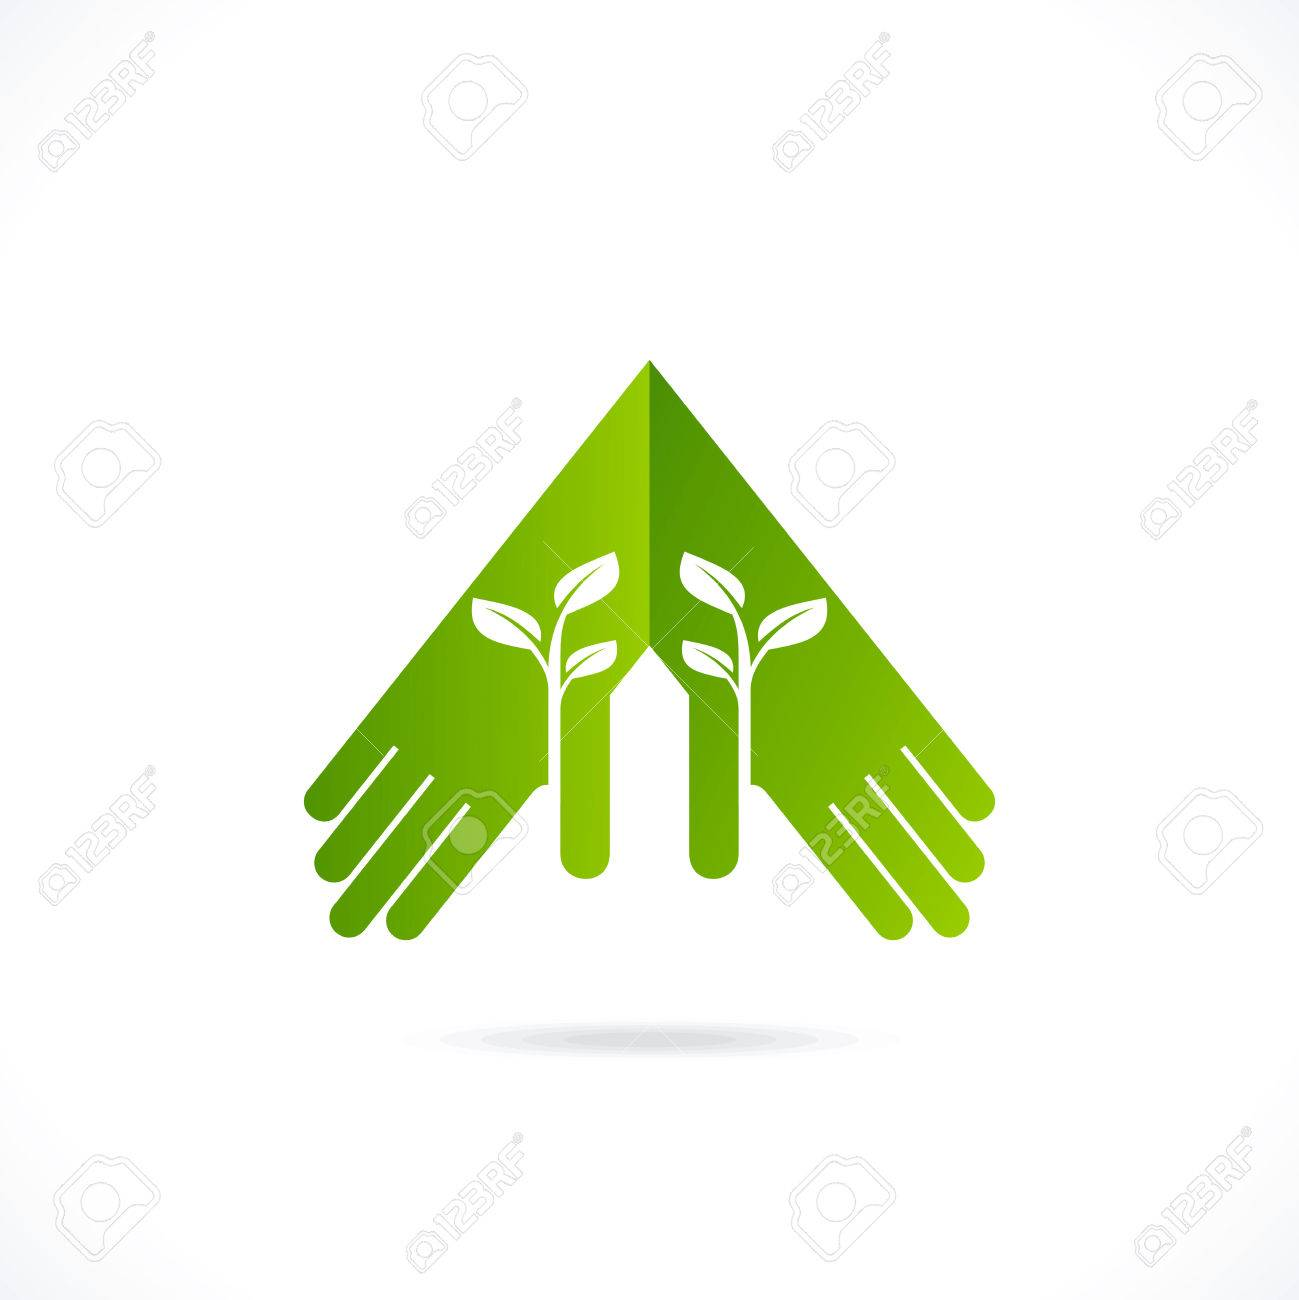 Ecological Symbols And Signshumans Hands And Green Growing